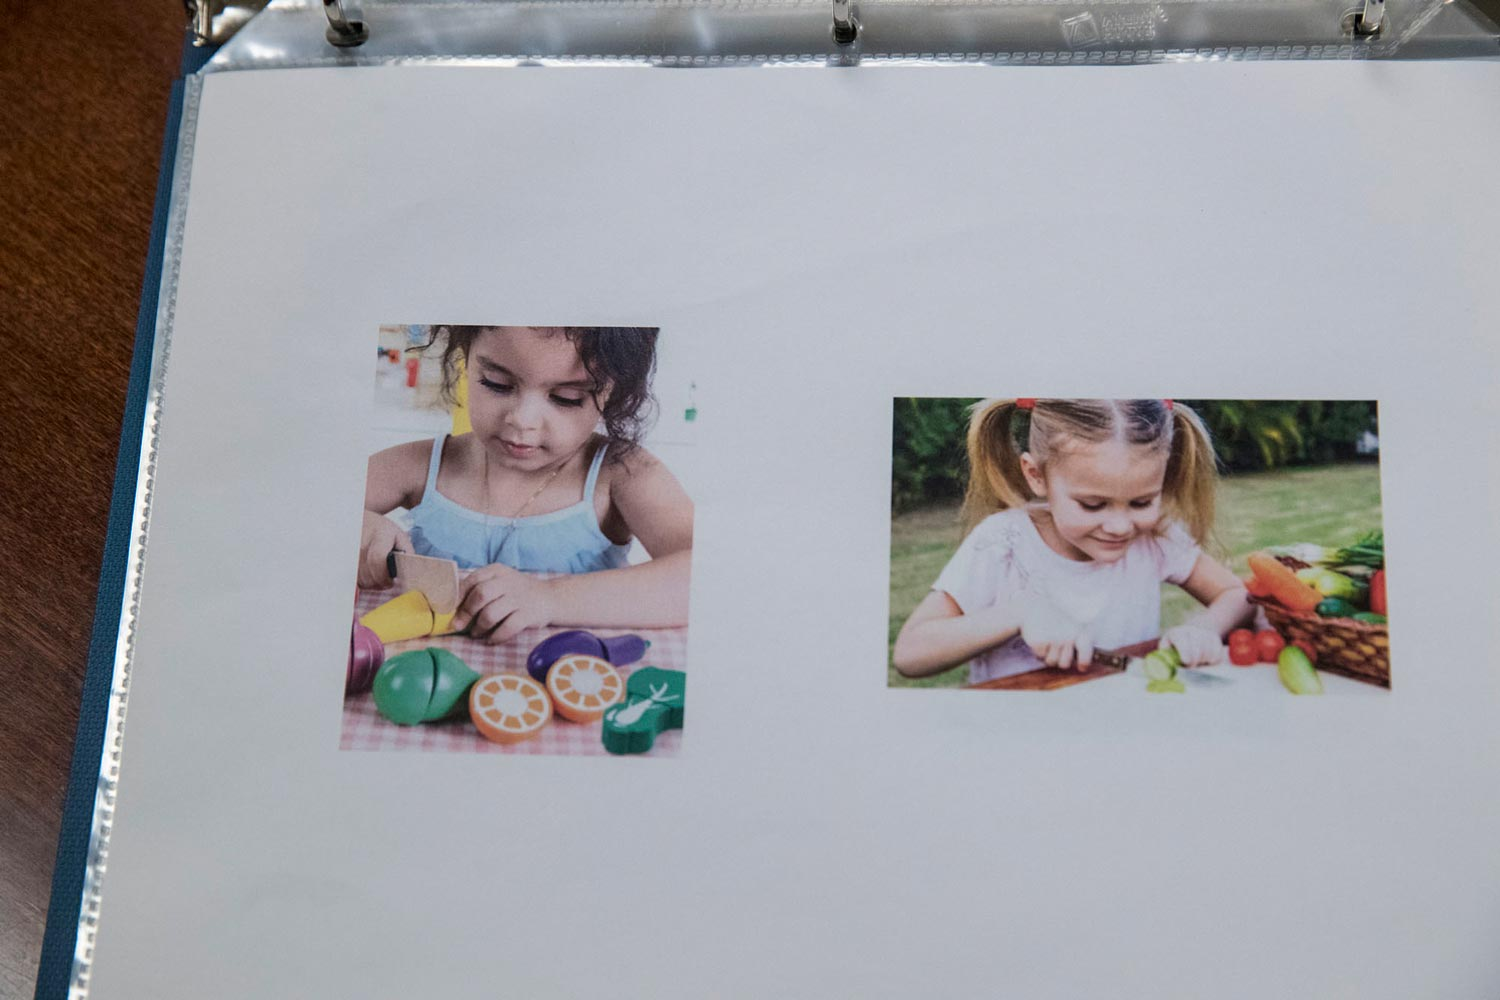 Two photos in a binder: a small child cutting a toy vegetable with a toy knife, and a small child cutting a real vegetable with a real knife.